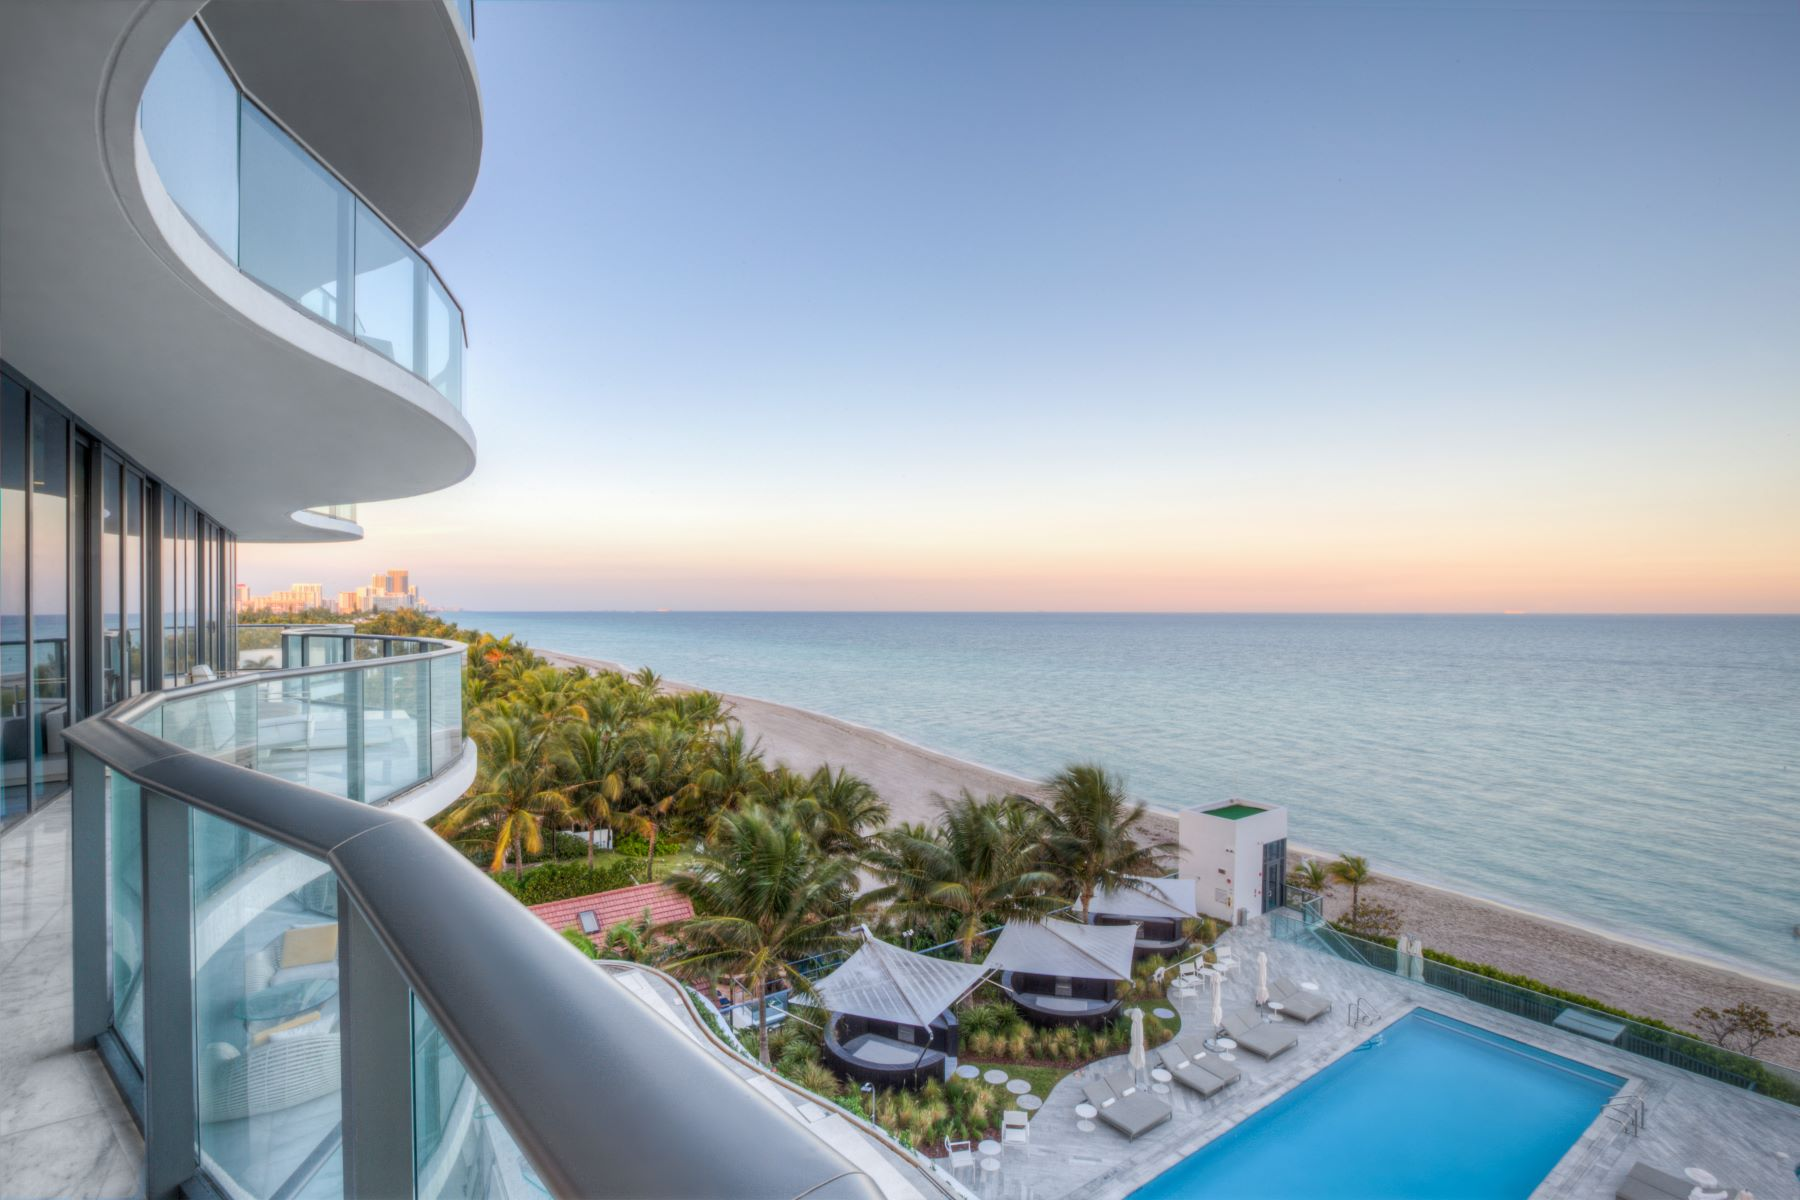 Condominium for Sale at 19575 Collins Ave 19575 Collins Ave 6 Sunny Isles Beach, Florida 33160 United States